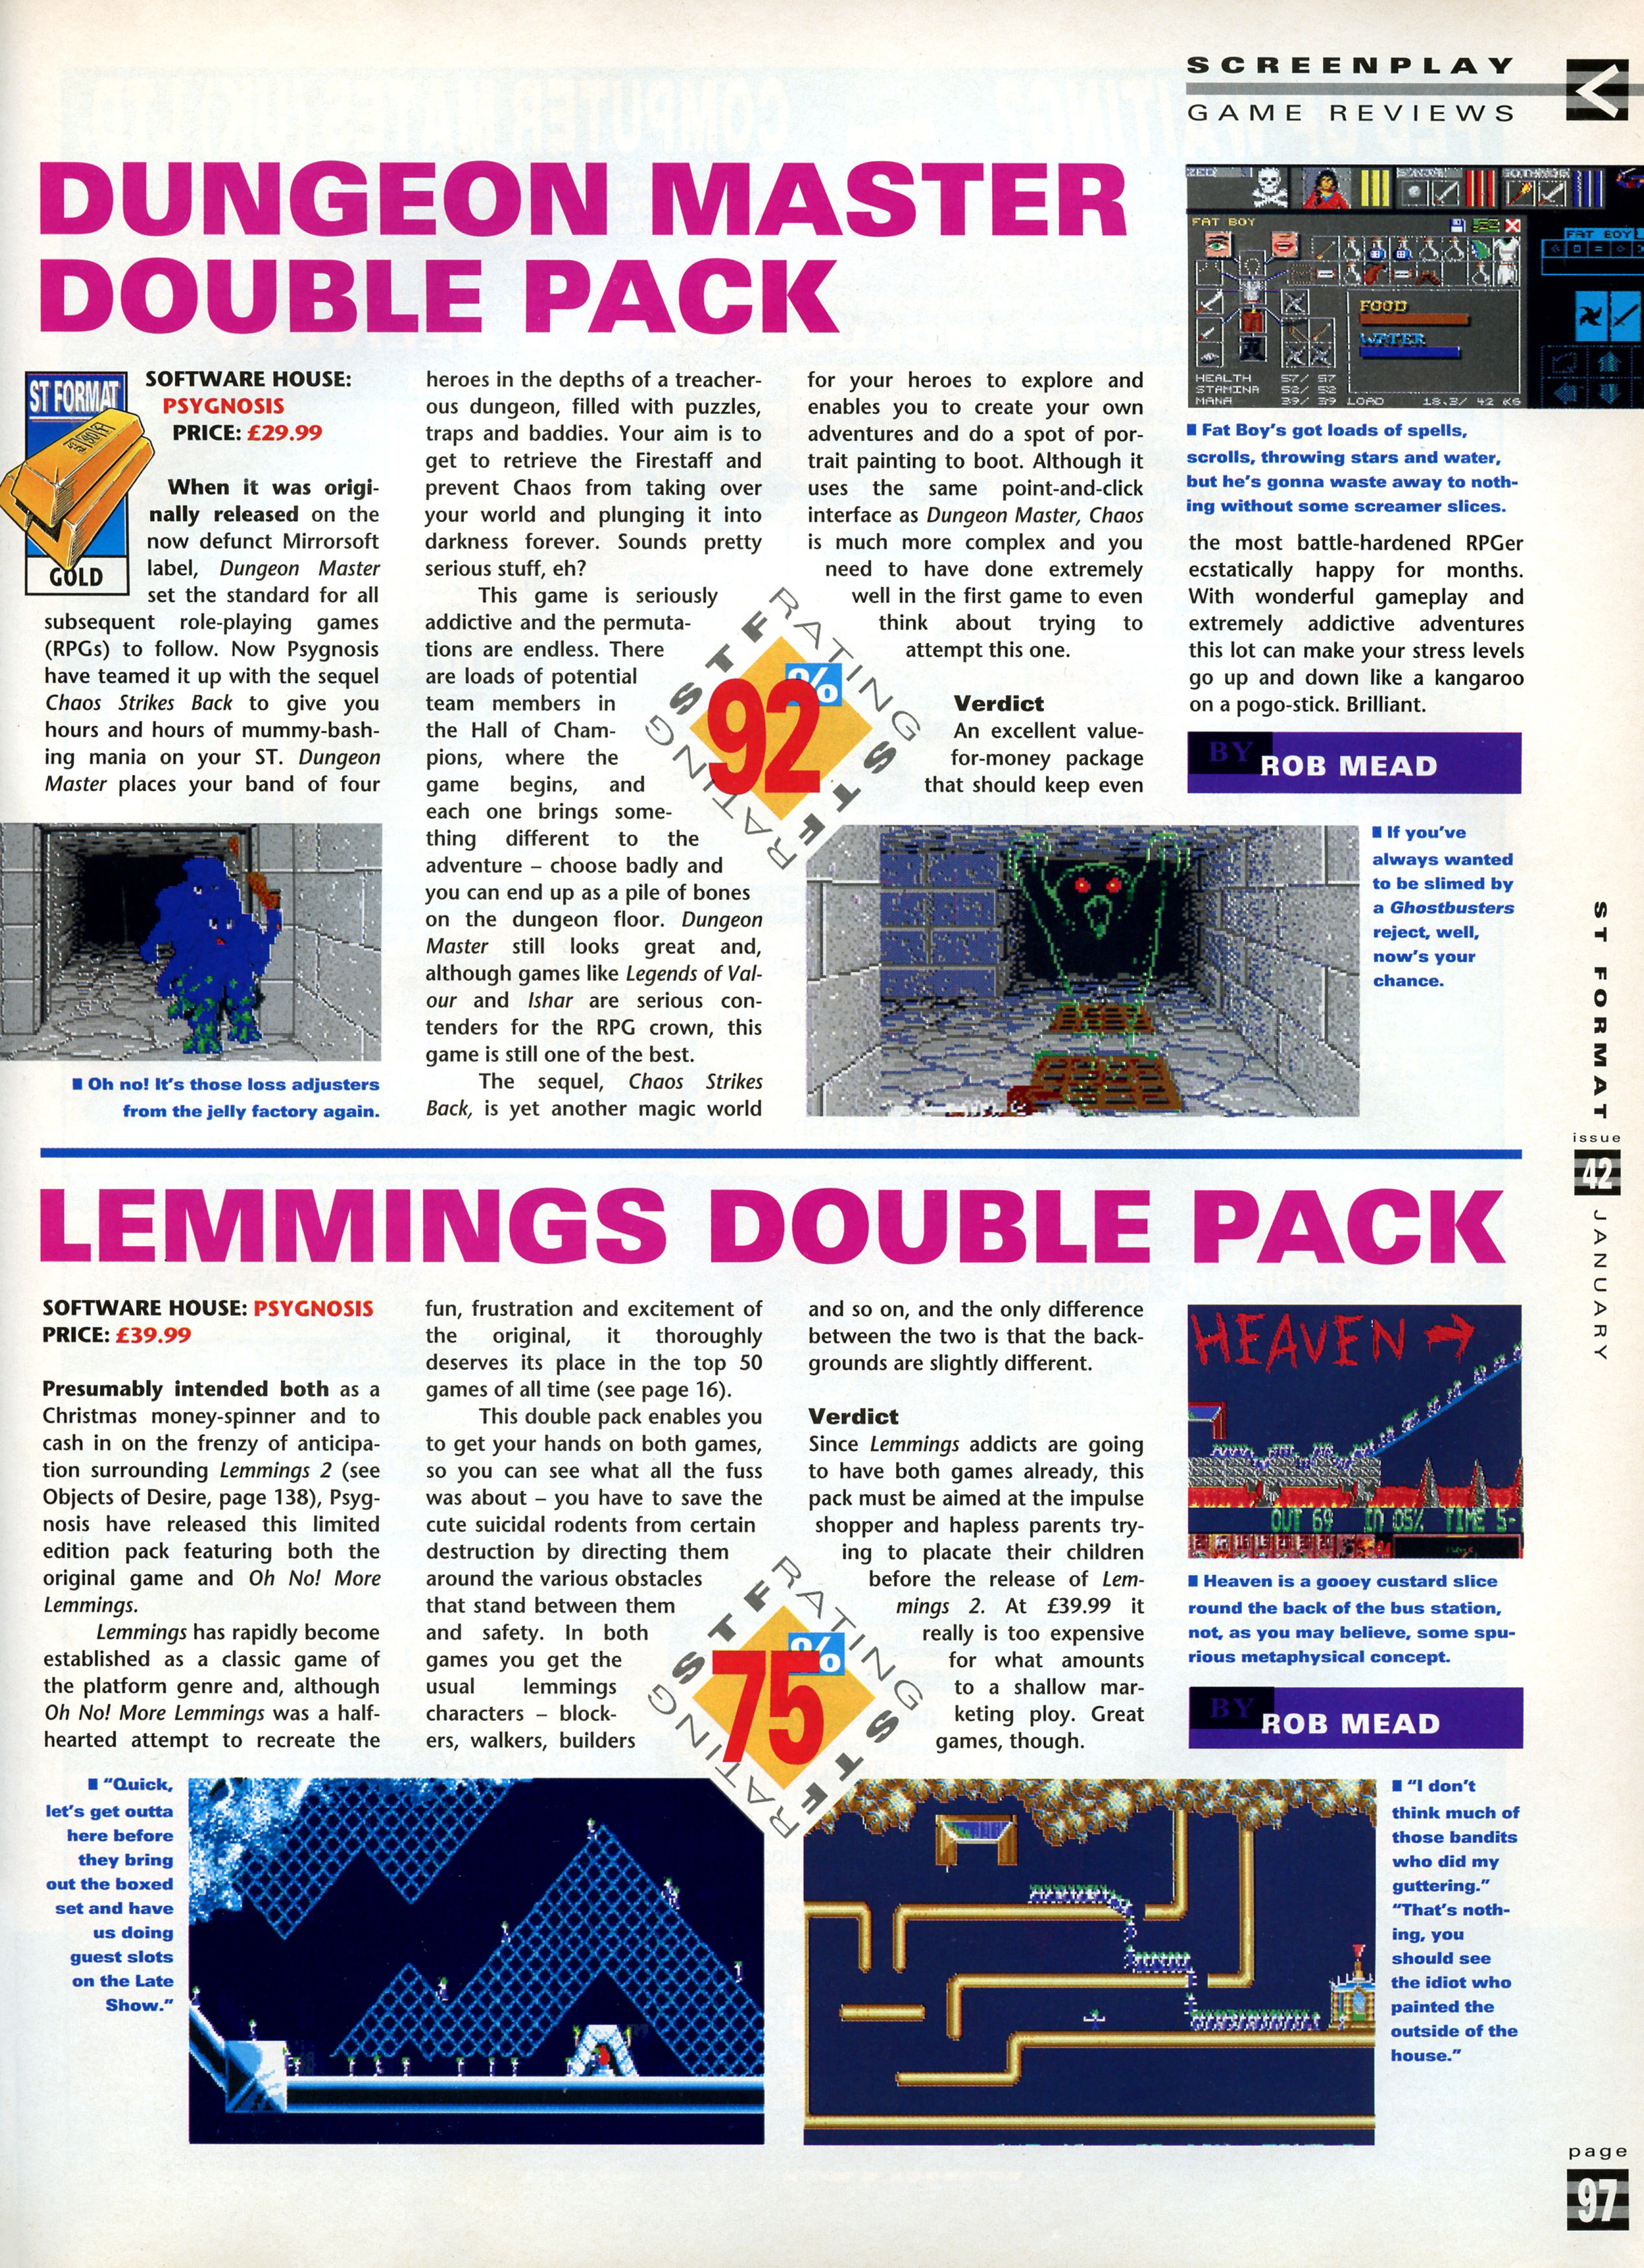 Dungeon Master And Chaos Strikes Back Review published in British magazine 'ST Format', Issue #42 January 1993, Page 97